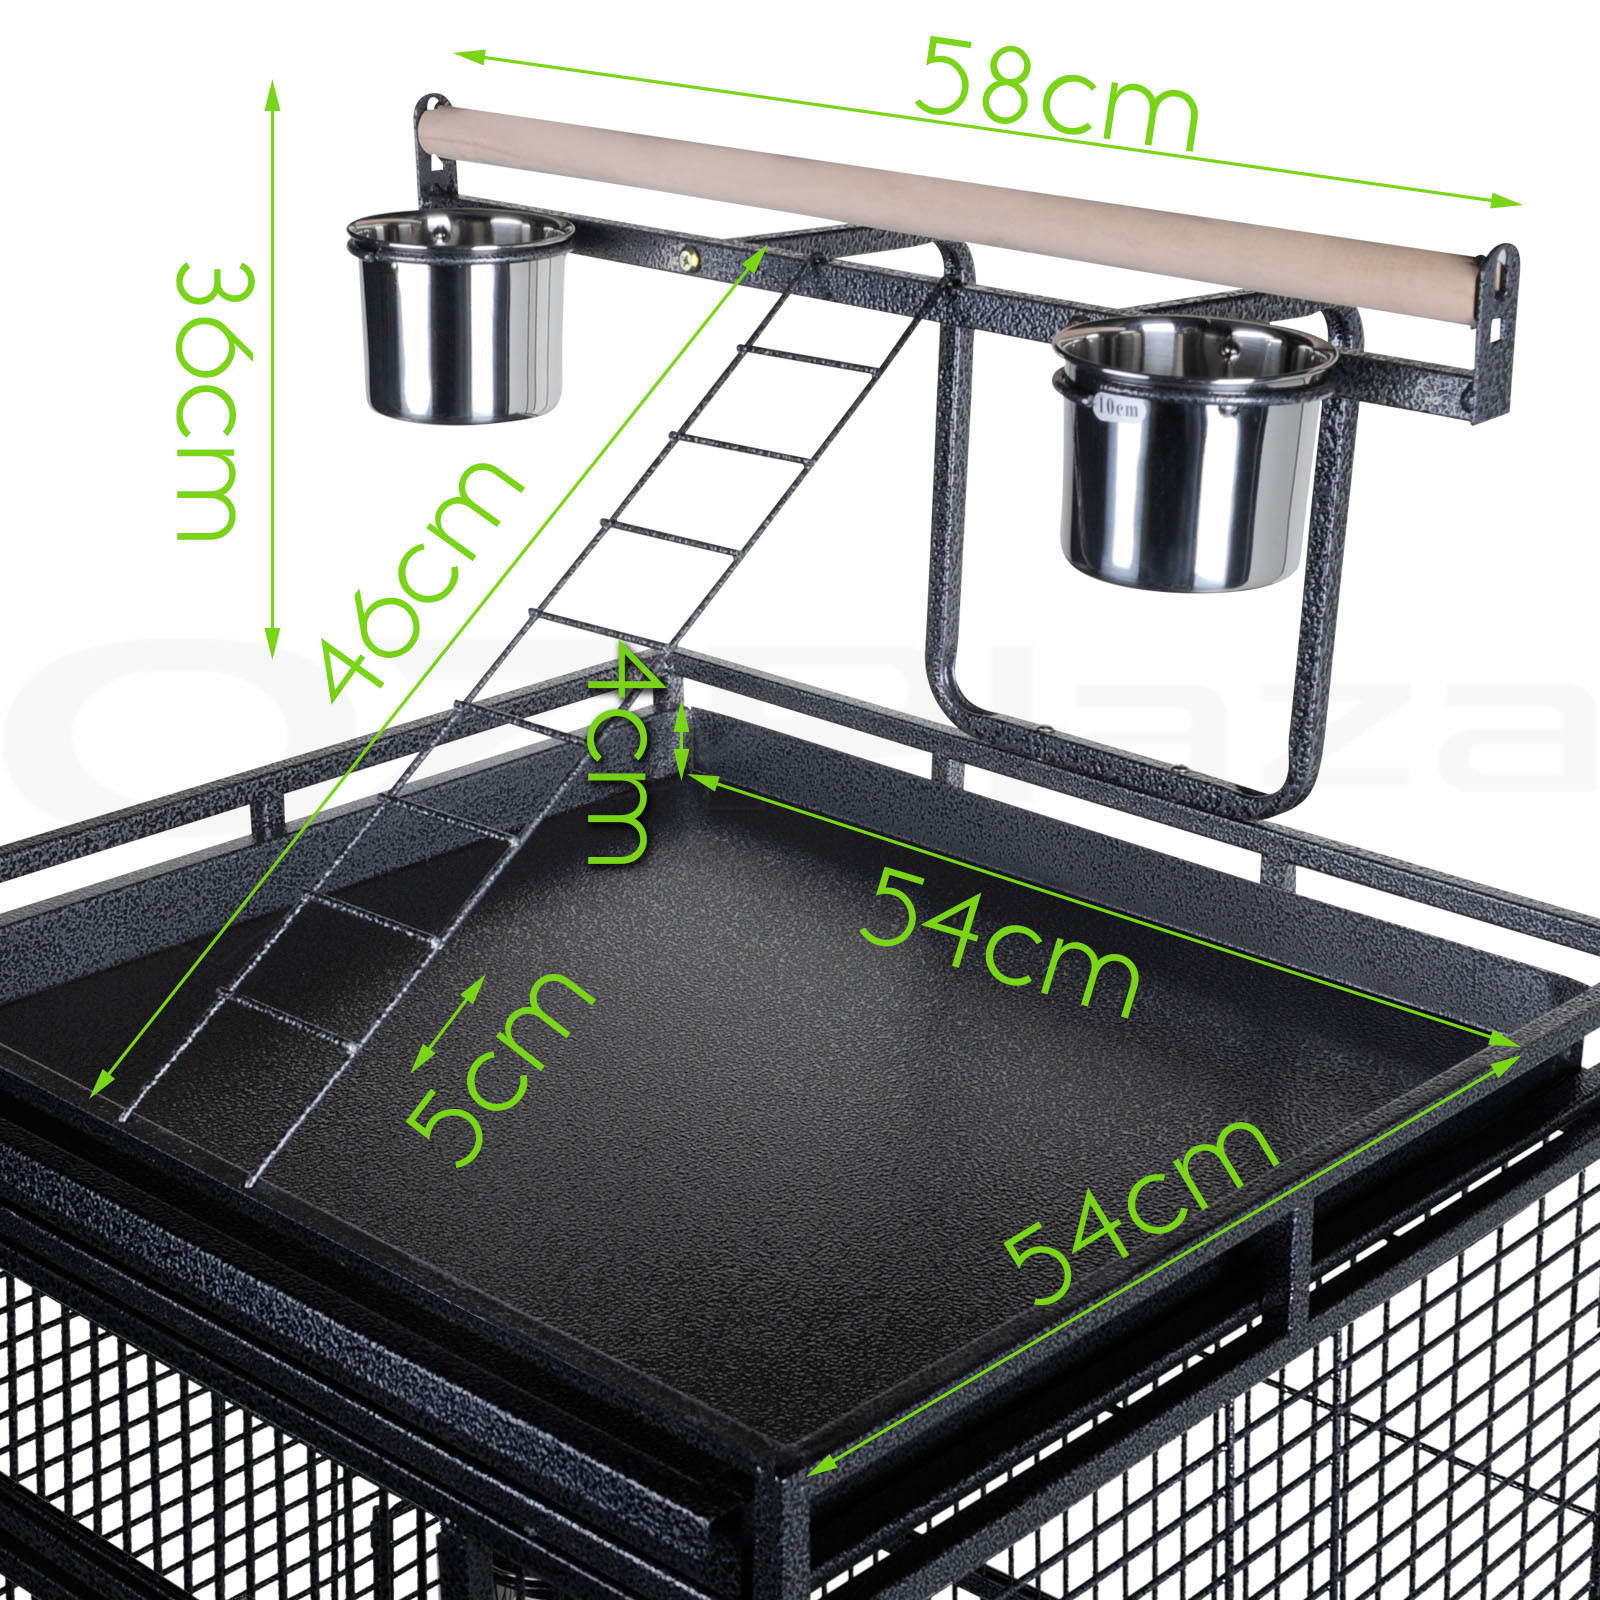 bird cage parrot aviary pet stand alone budgie castor wheels super large 170cm aud. Black Bedroom Furniture Sets. Home Design Ideas